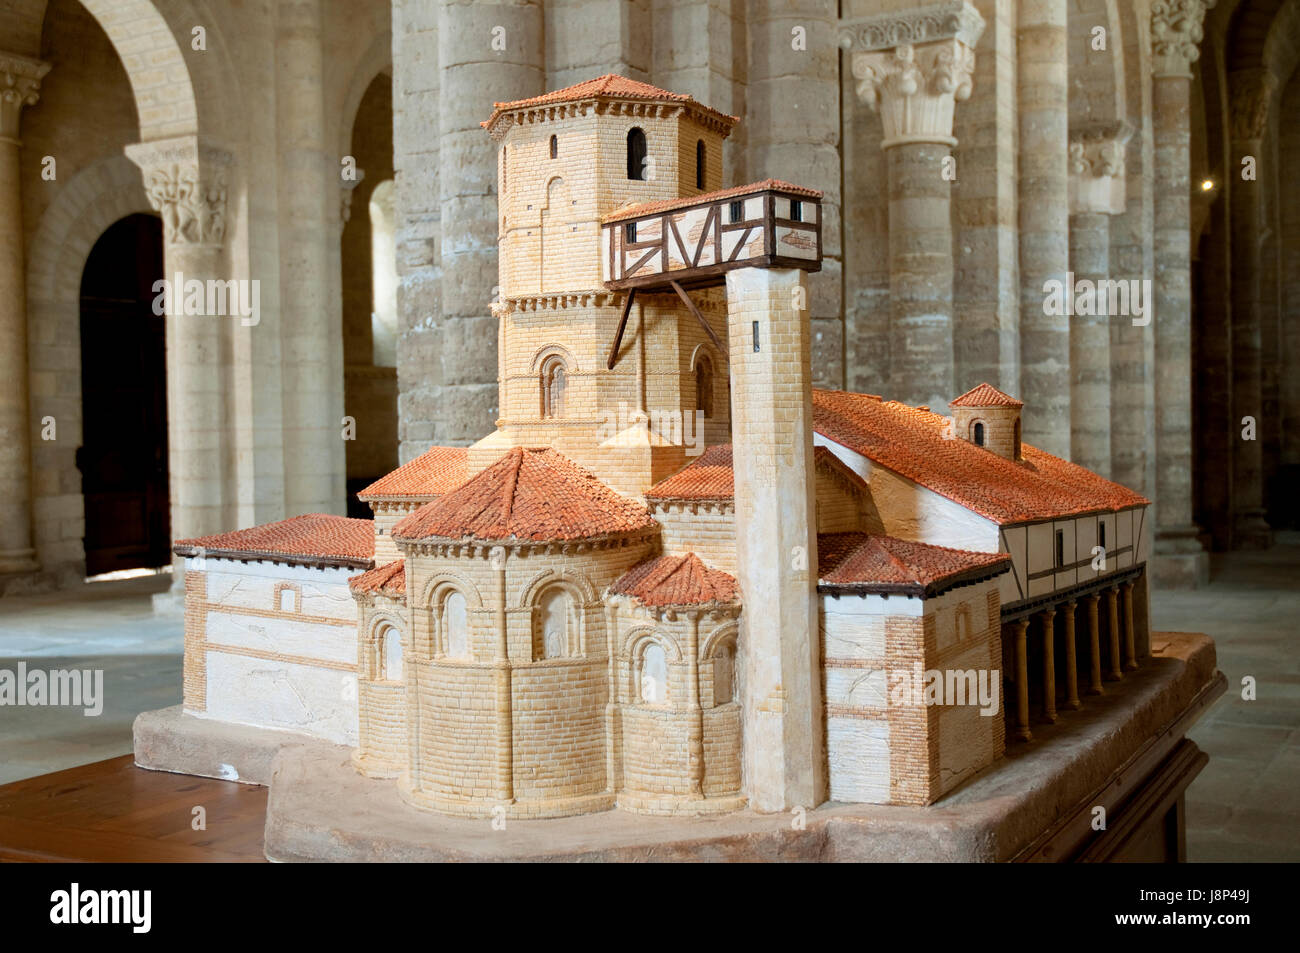 Mockup of the church. San martin church, Fromista, Palencia province, Castilla Leon, Spain. - Stock Image